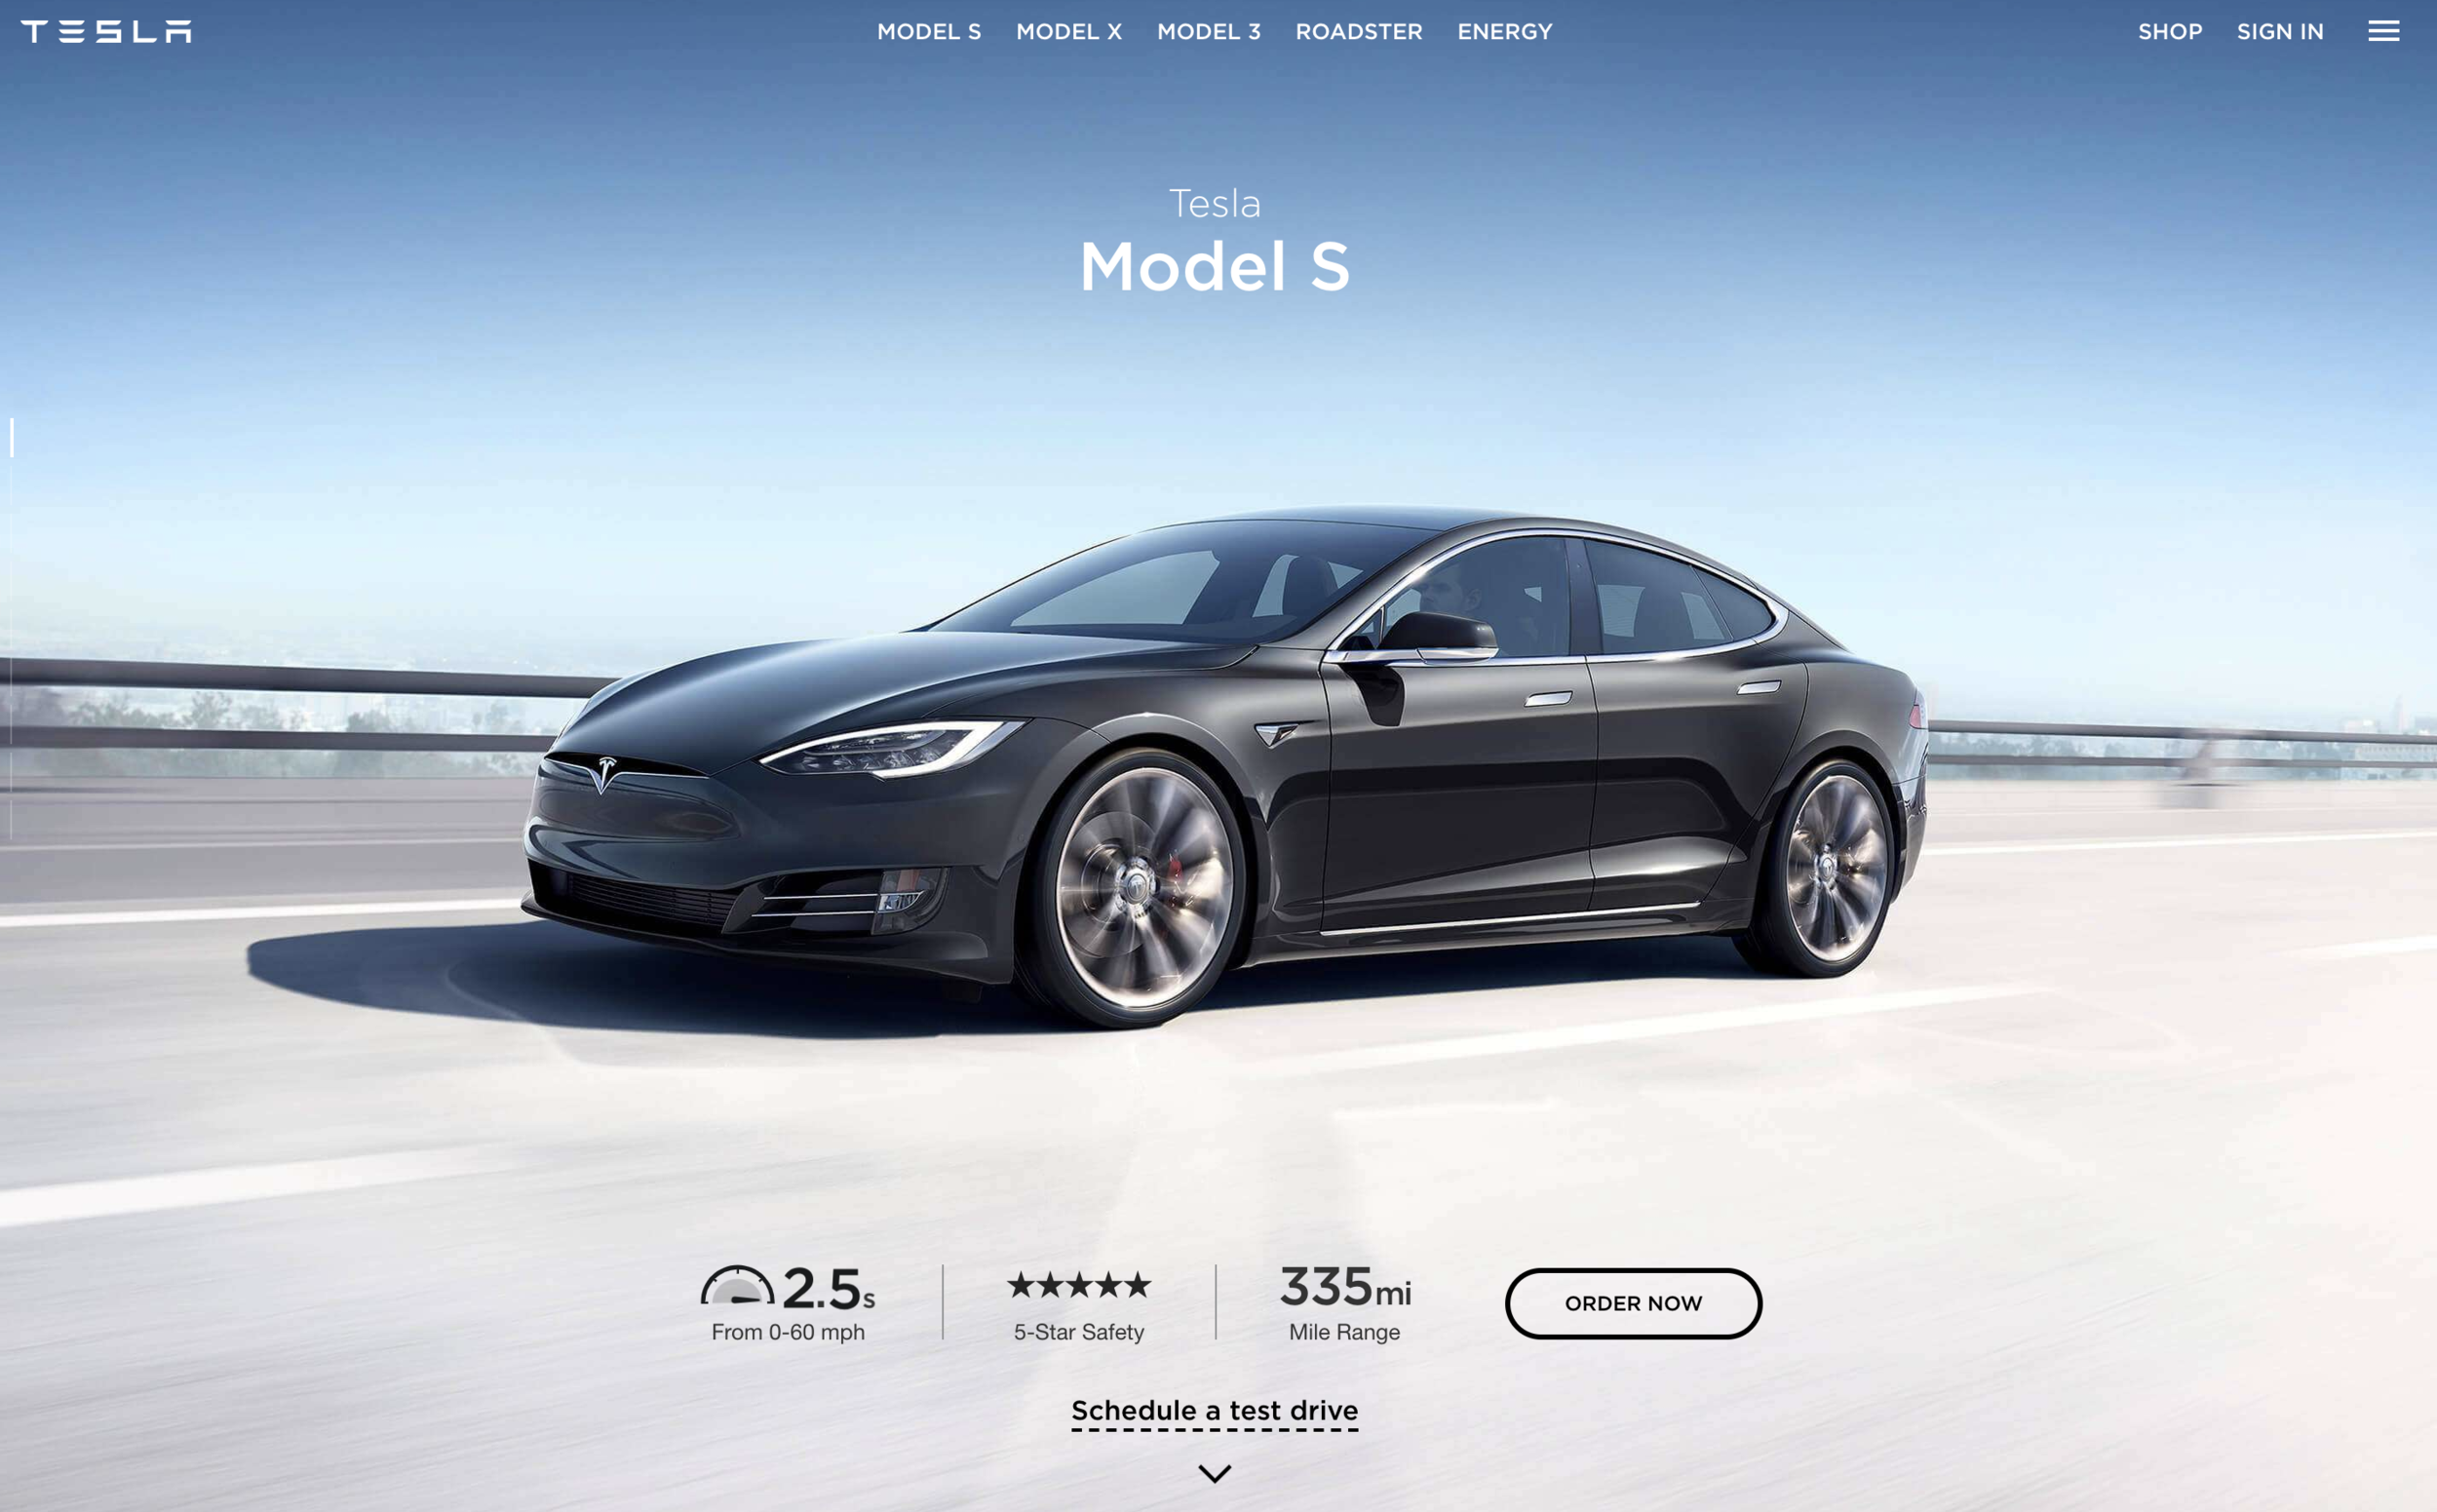 model s, simple and sexy. - it's a unique challenge, describing a car that speaks for itself. most of my storytelling here was uncovering the badass electric car that model s already is. [copy: full web page]